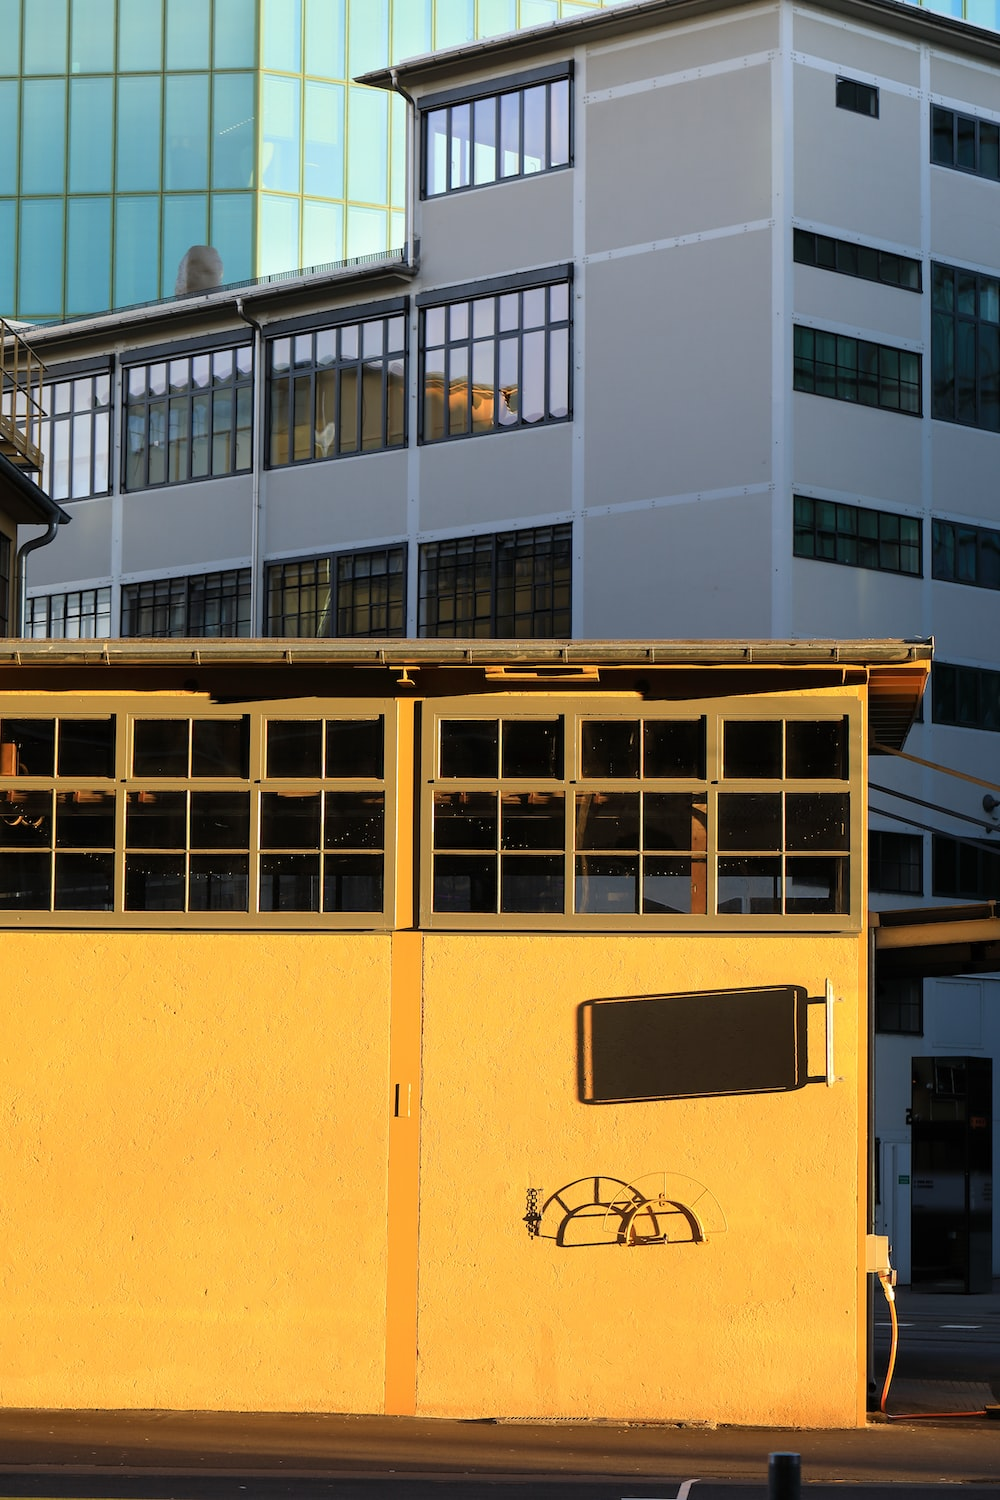 yellow and grey concrete buildings